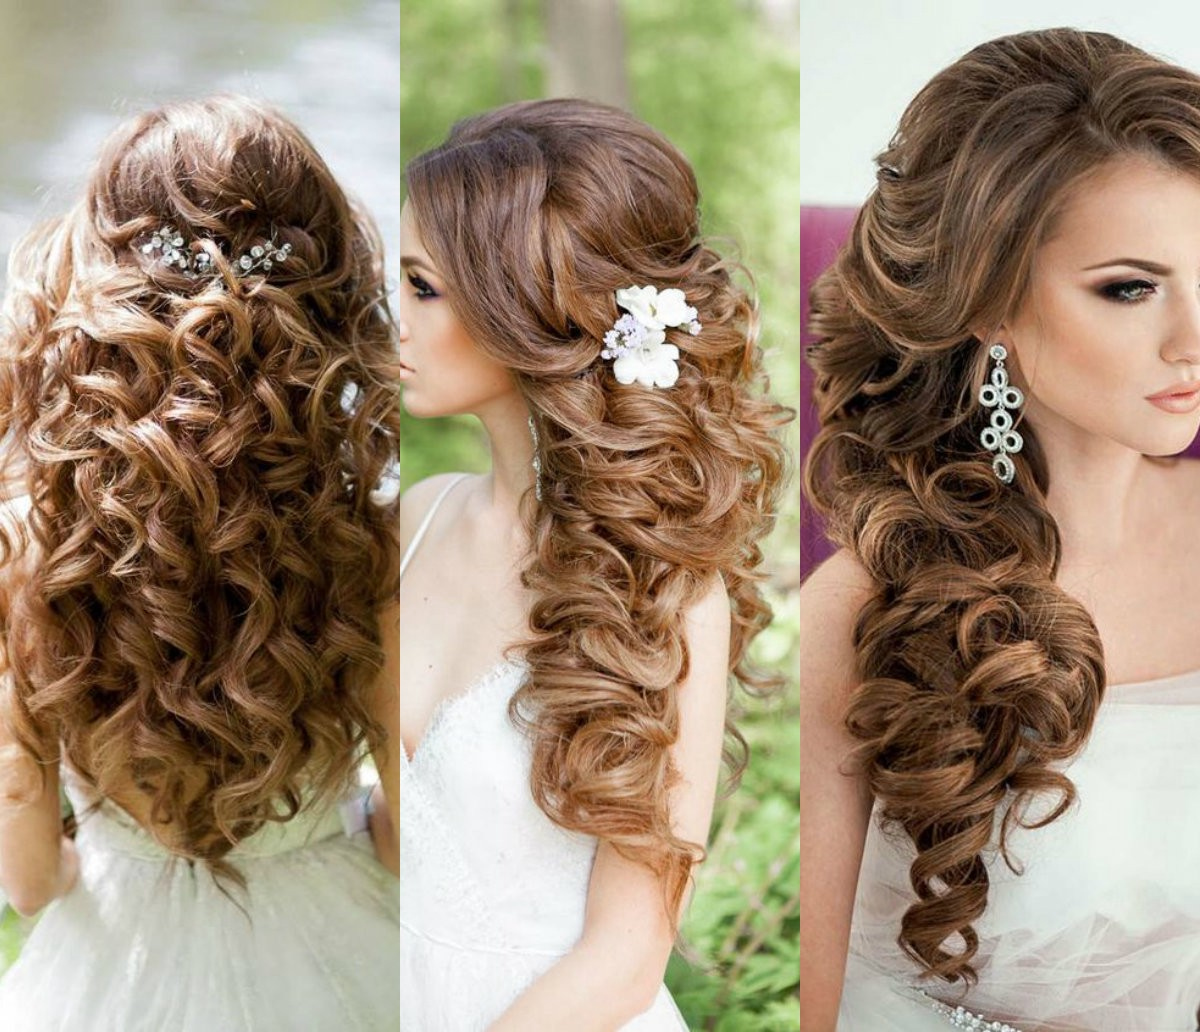 Simply Gorgeous Last Minute Party Hairdos For Curly Hair!